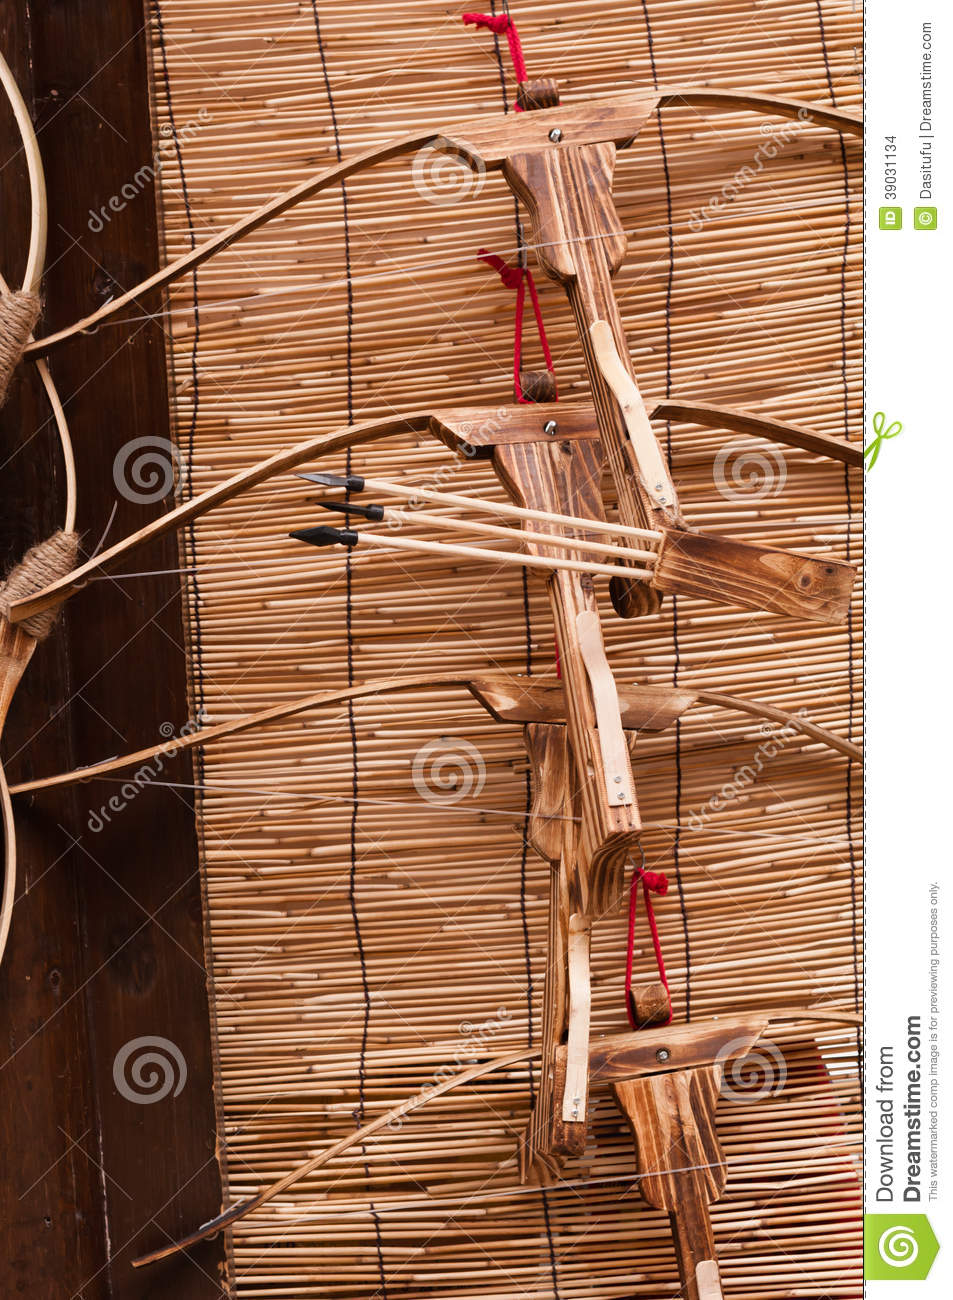 Bows Arrows Stock Photo Image 39031134